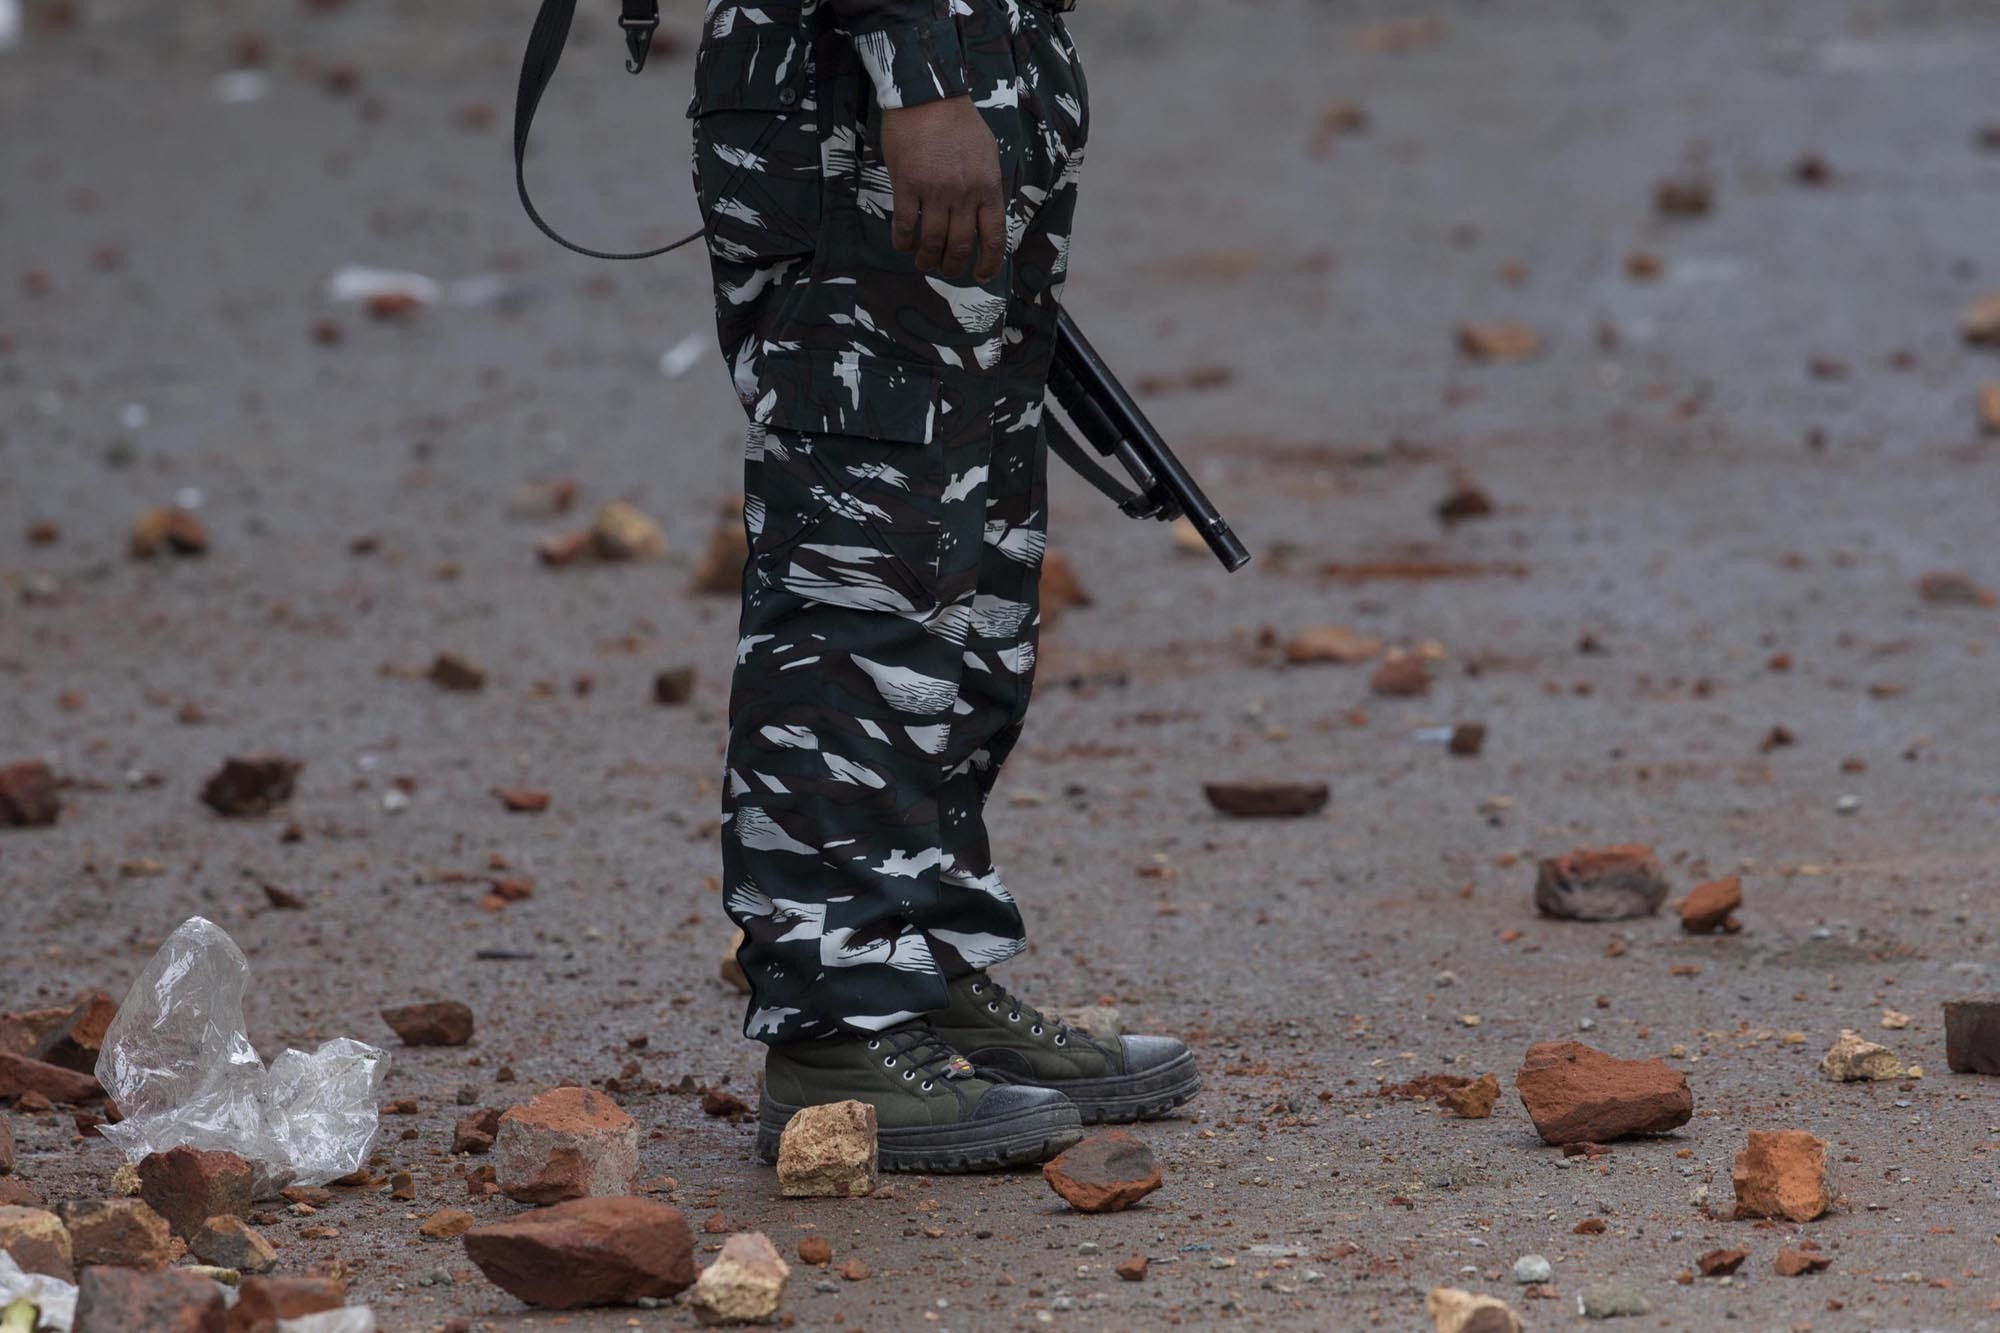 Indian police say they killed a top militant in Kashmir